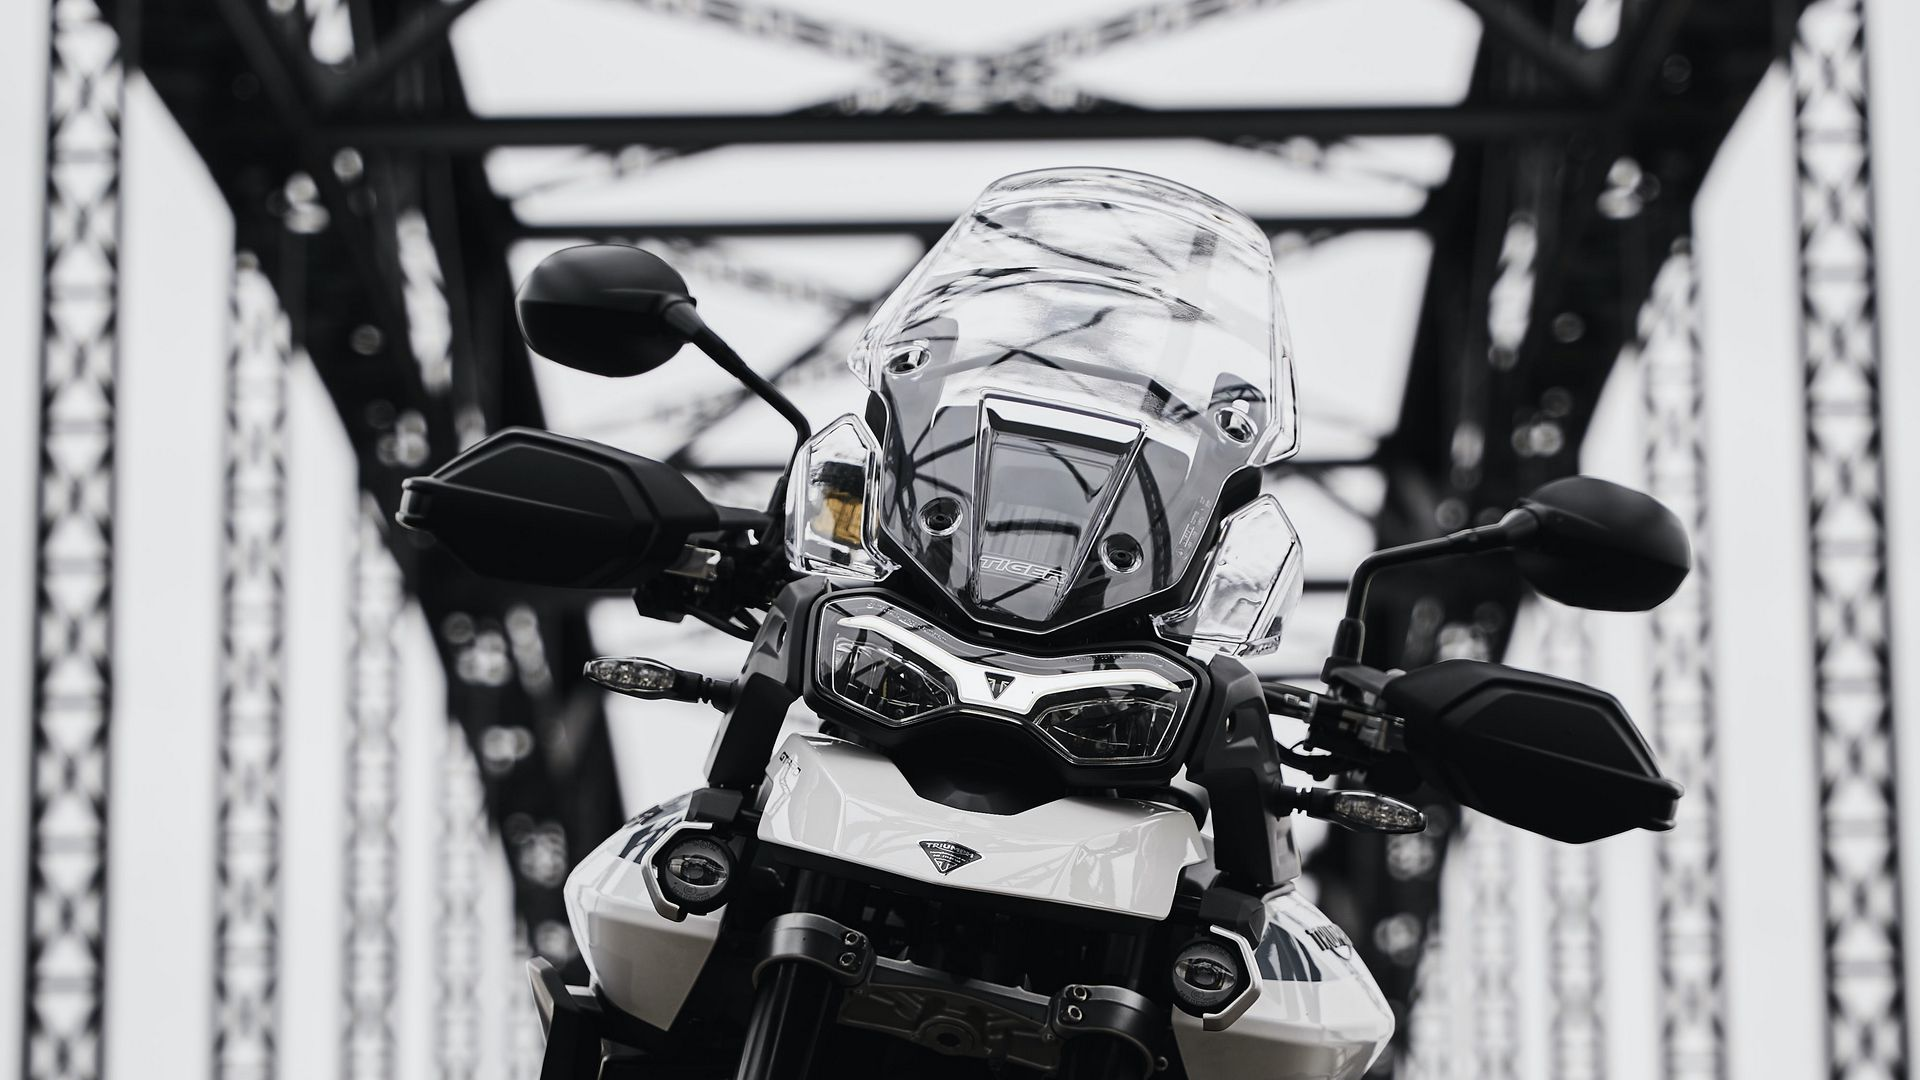 Triumph, Tiger 900 Wallpapers Free Download